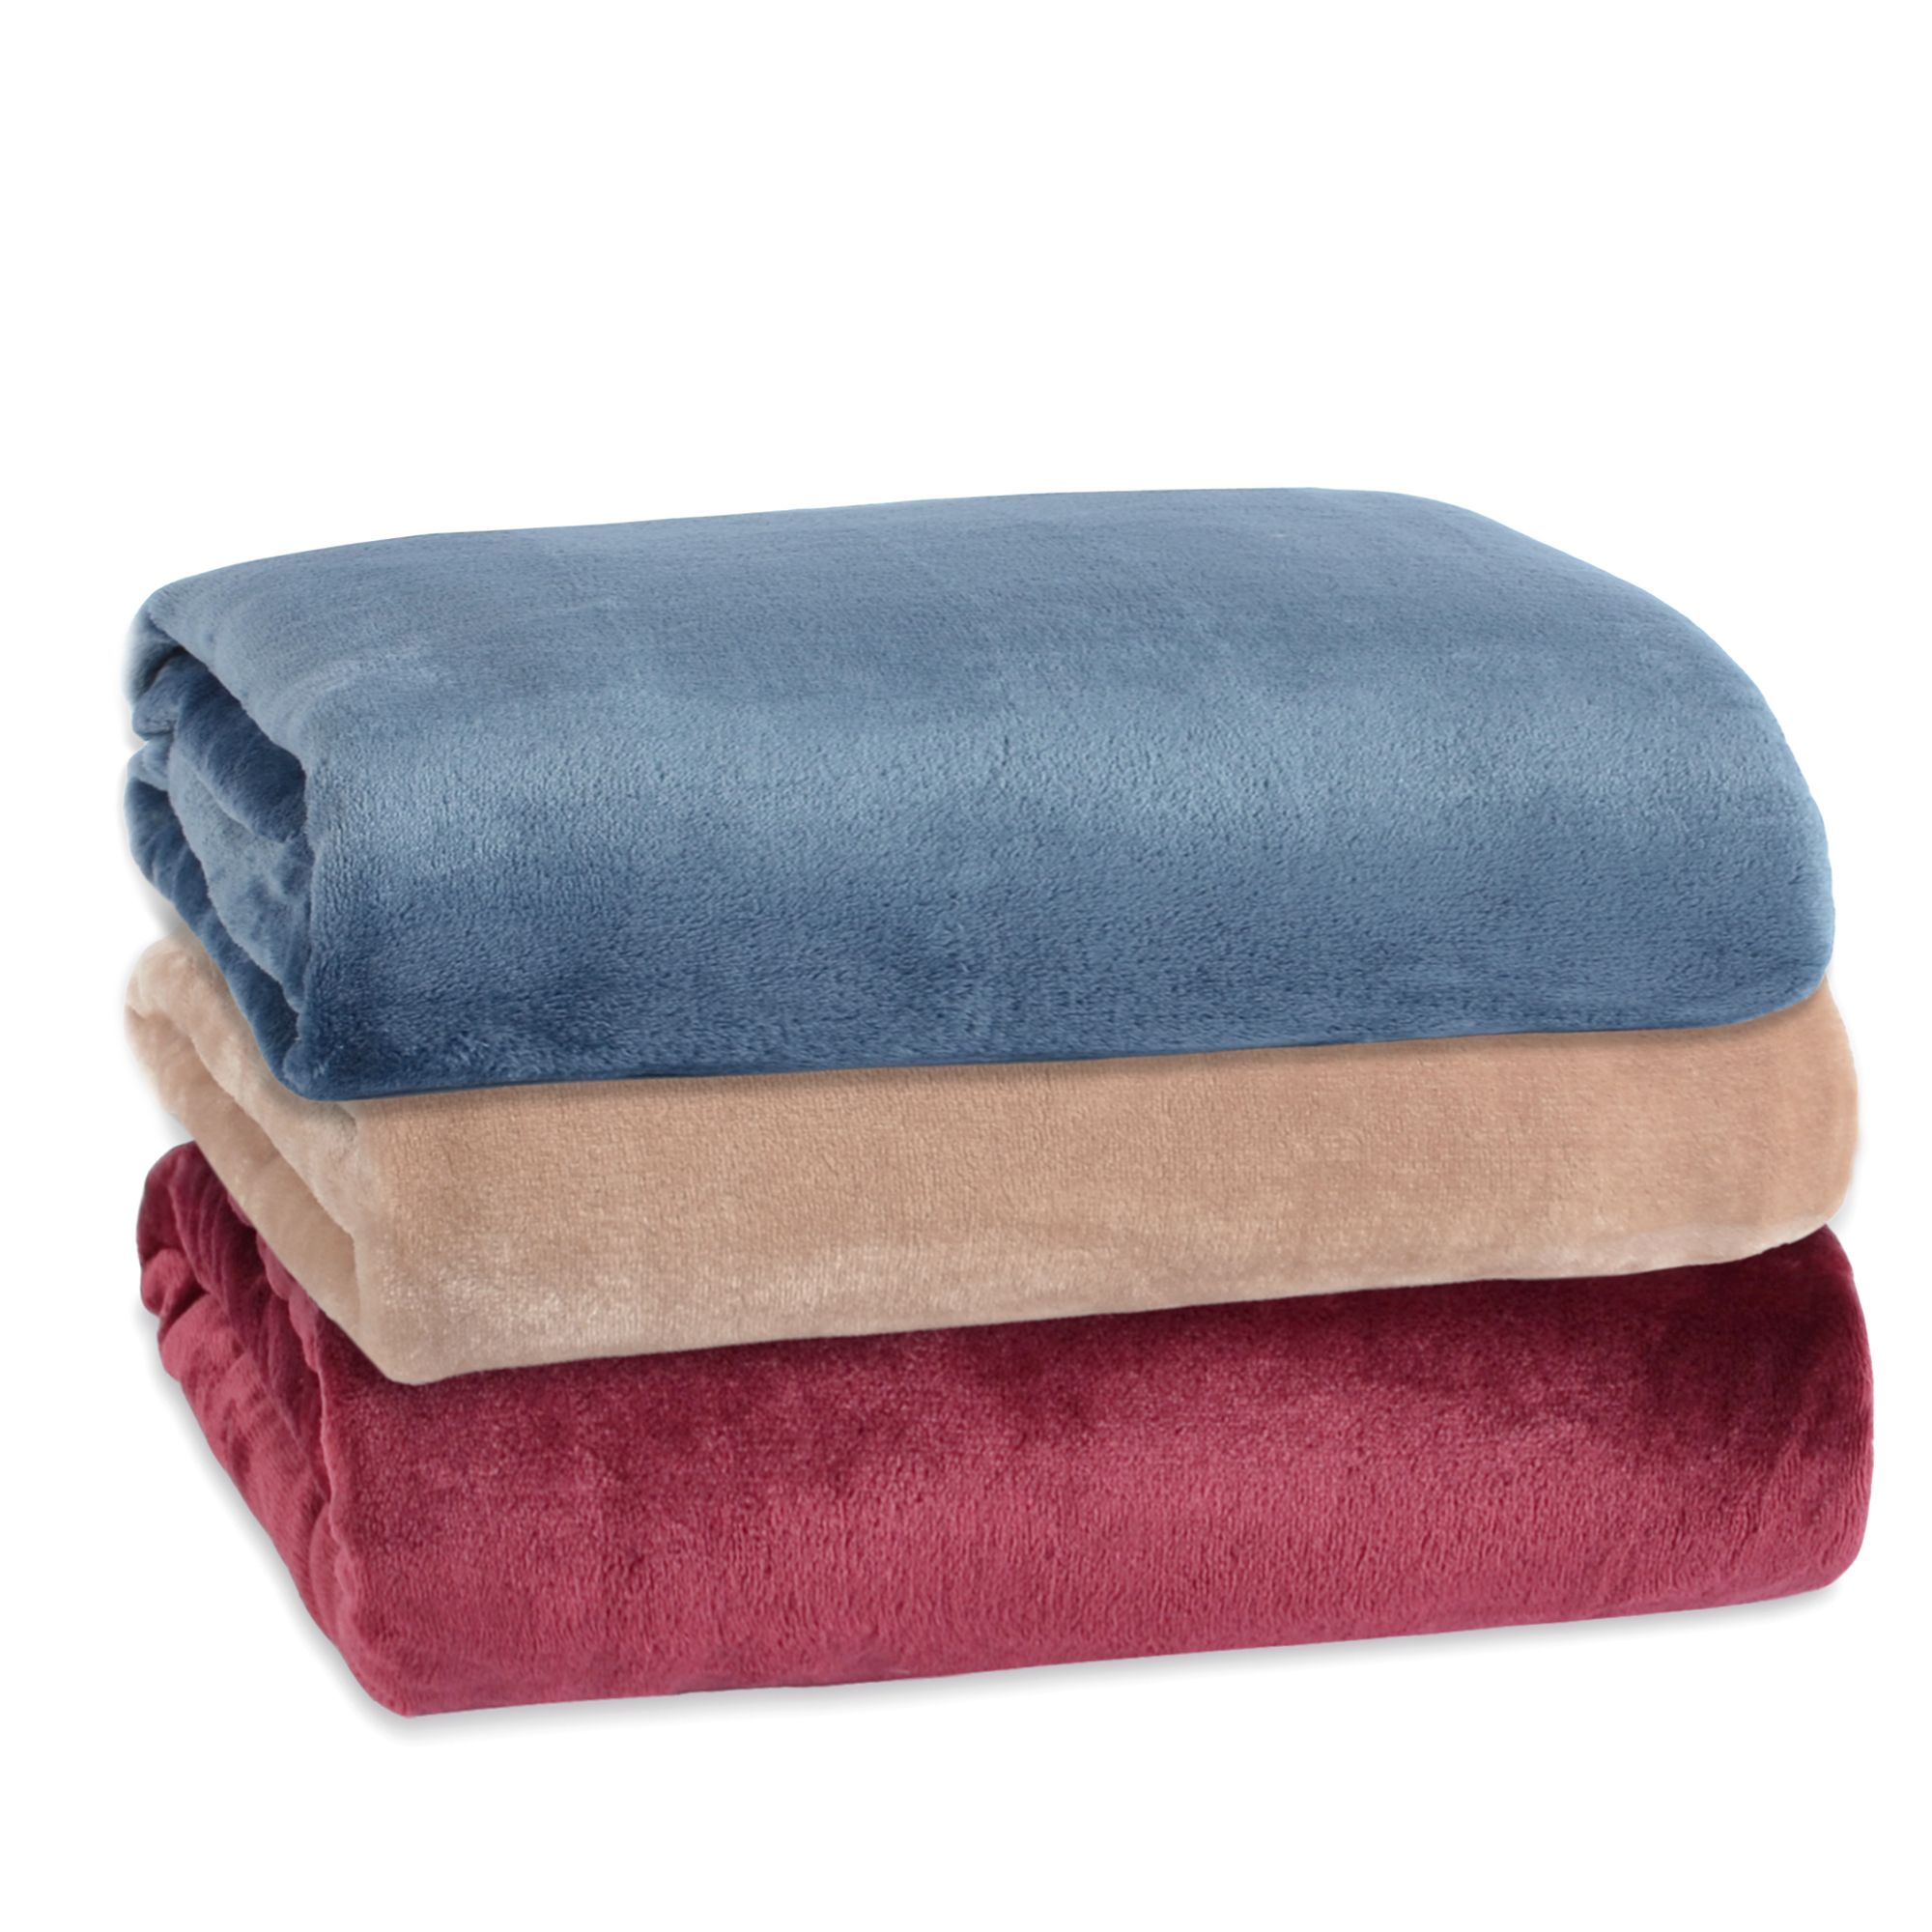 Berkshire Blanket Modern fort Throw Bed Bath & Beyond